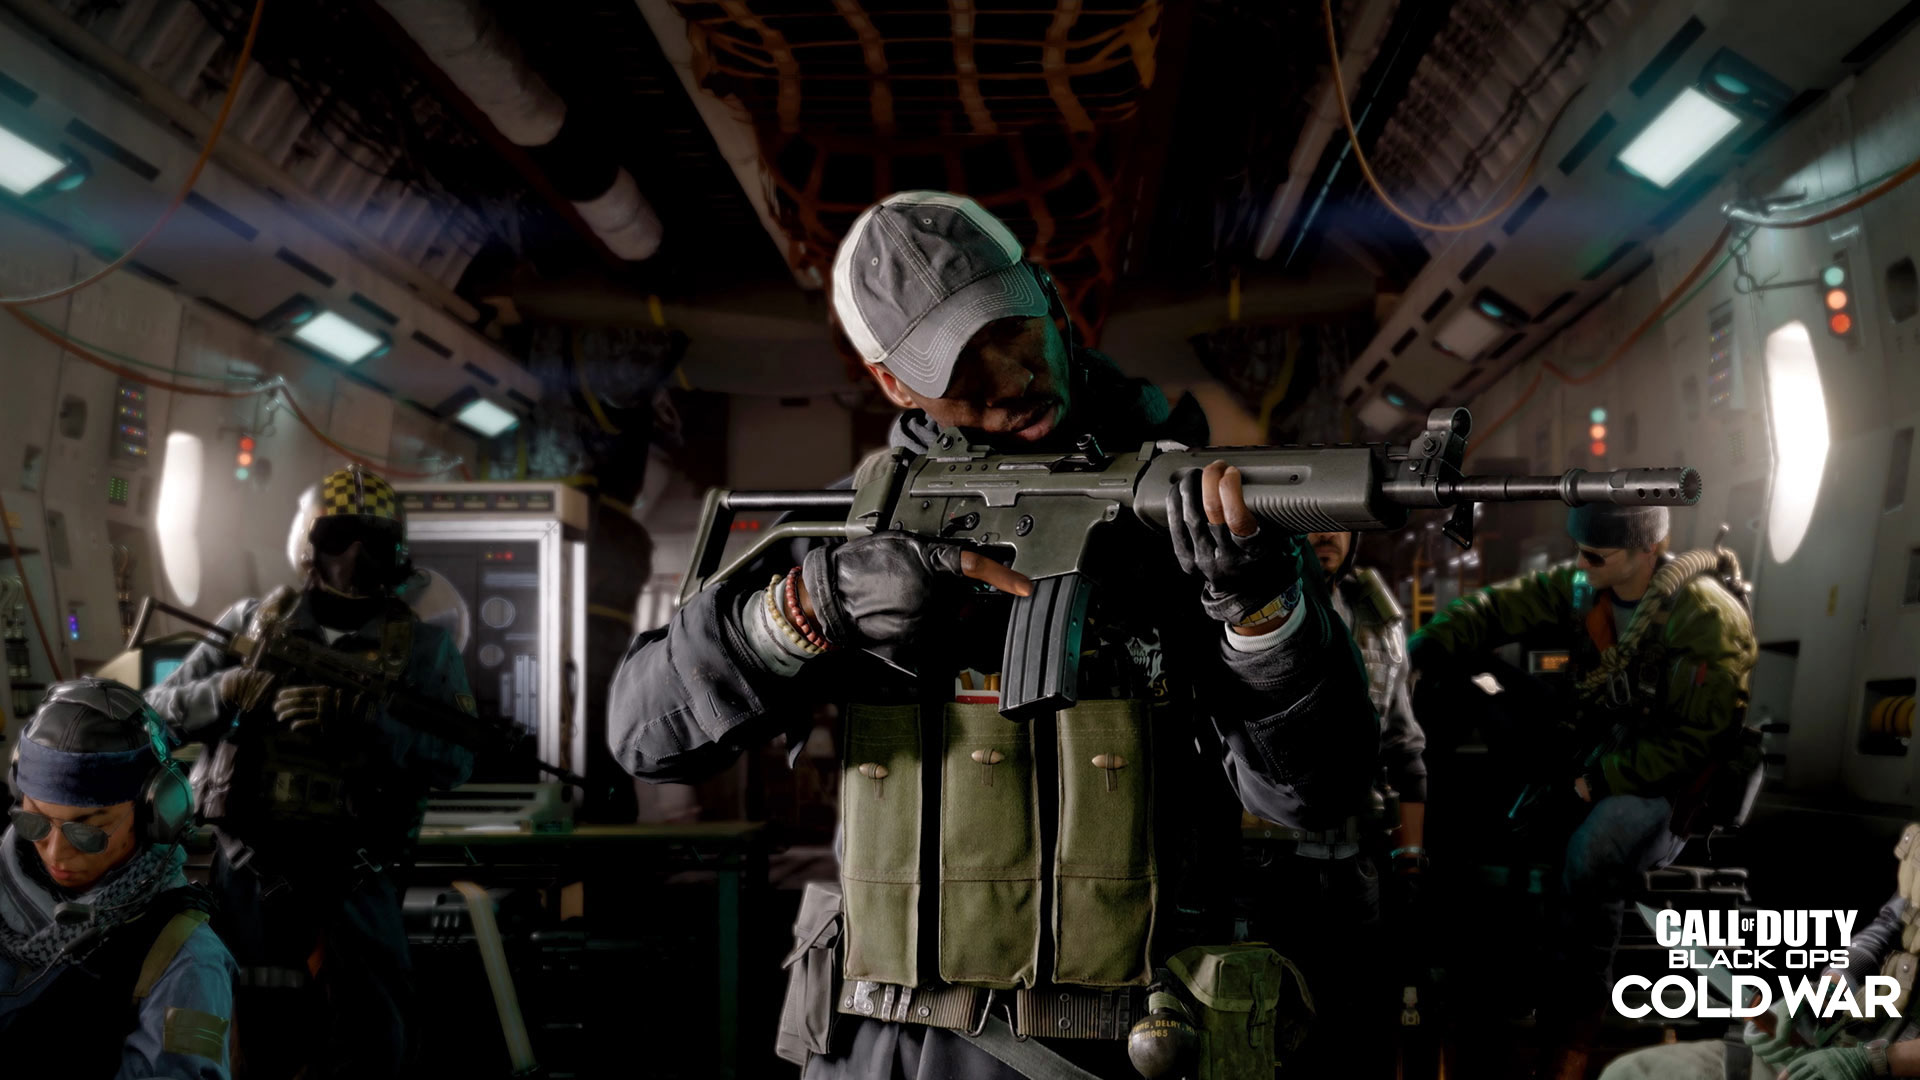 Call of Duty Endowment Challenger DLC is the first Black Ops Cold War store pack